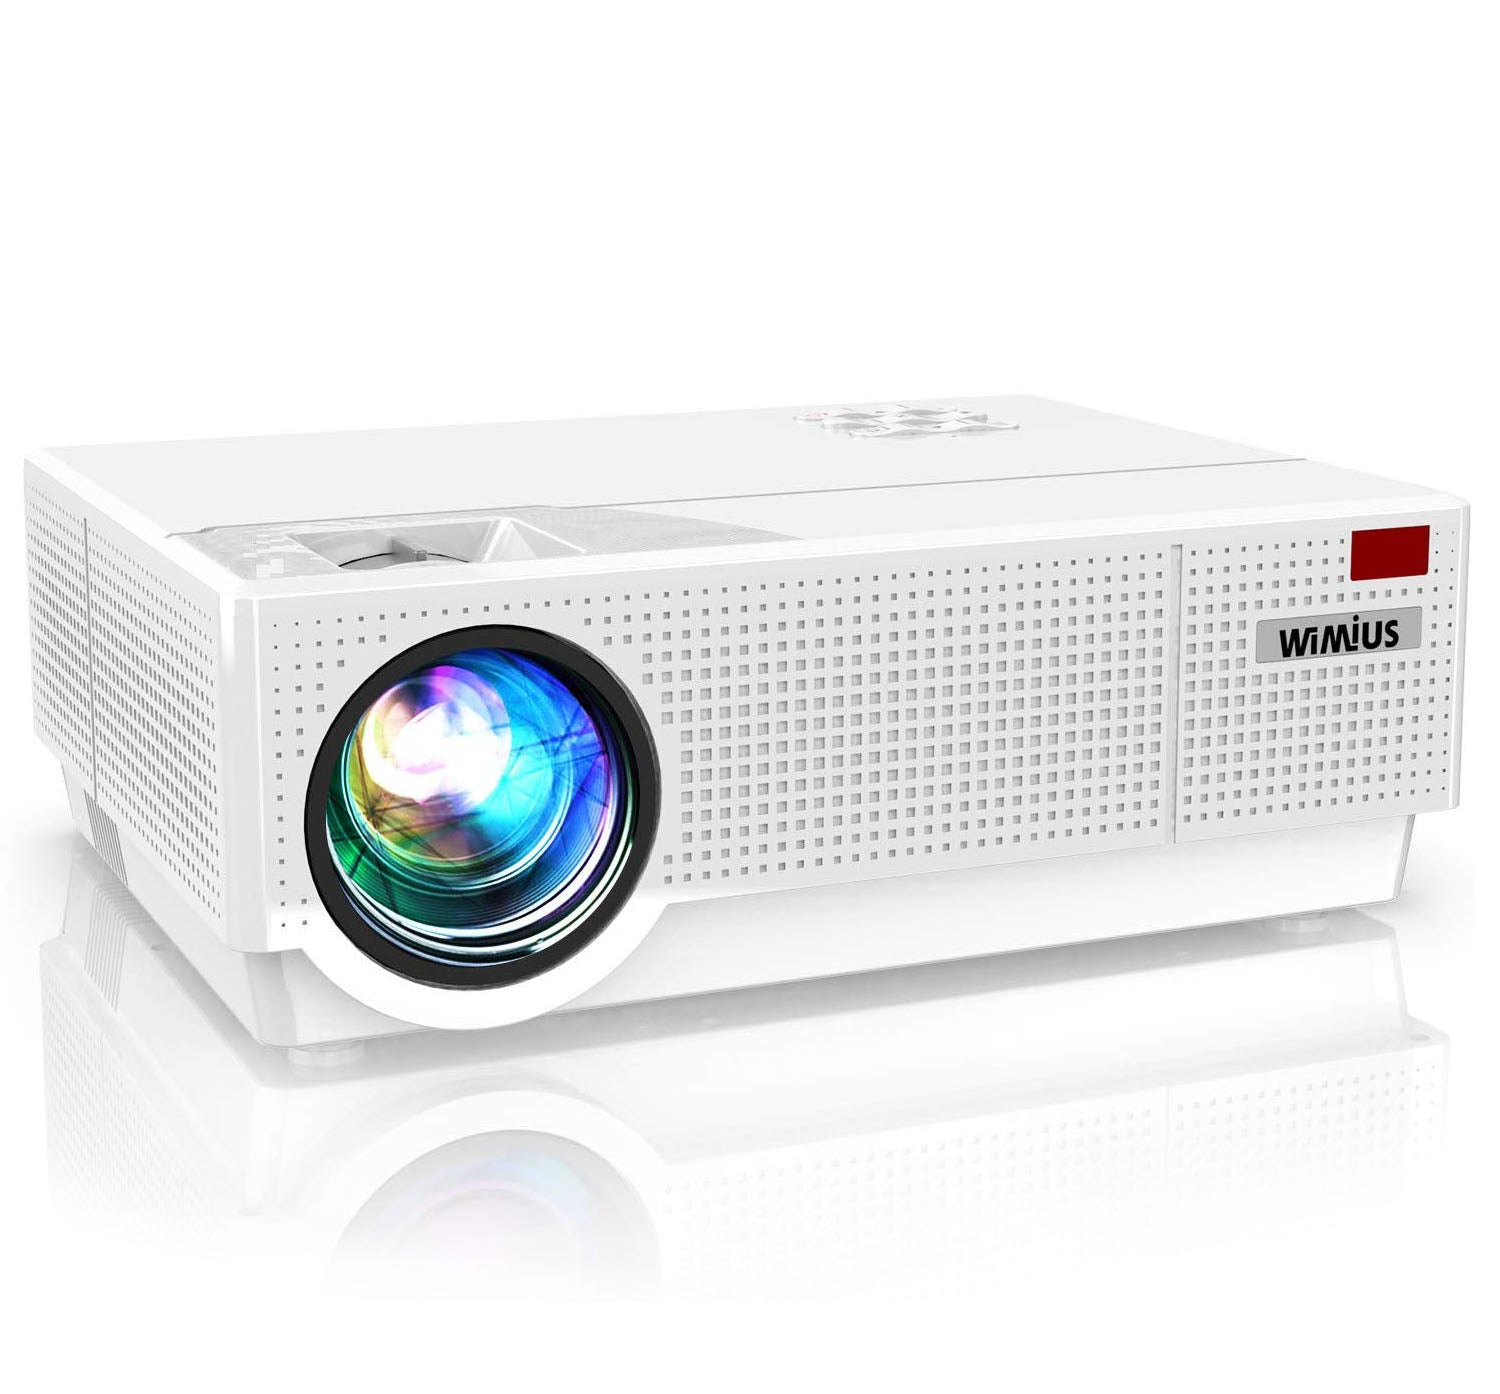 WiMiUS Video Projector - P28 - Wimius